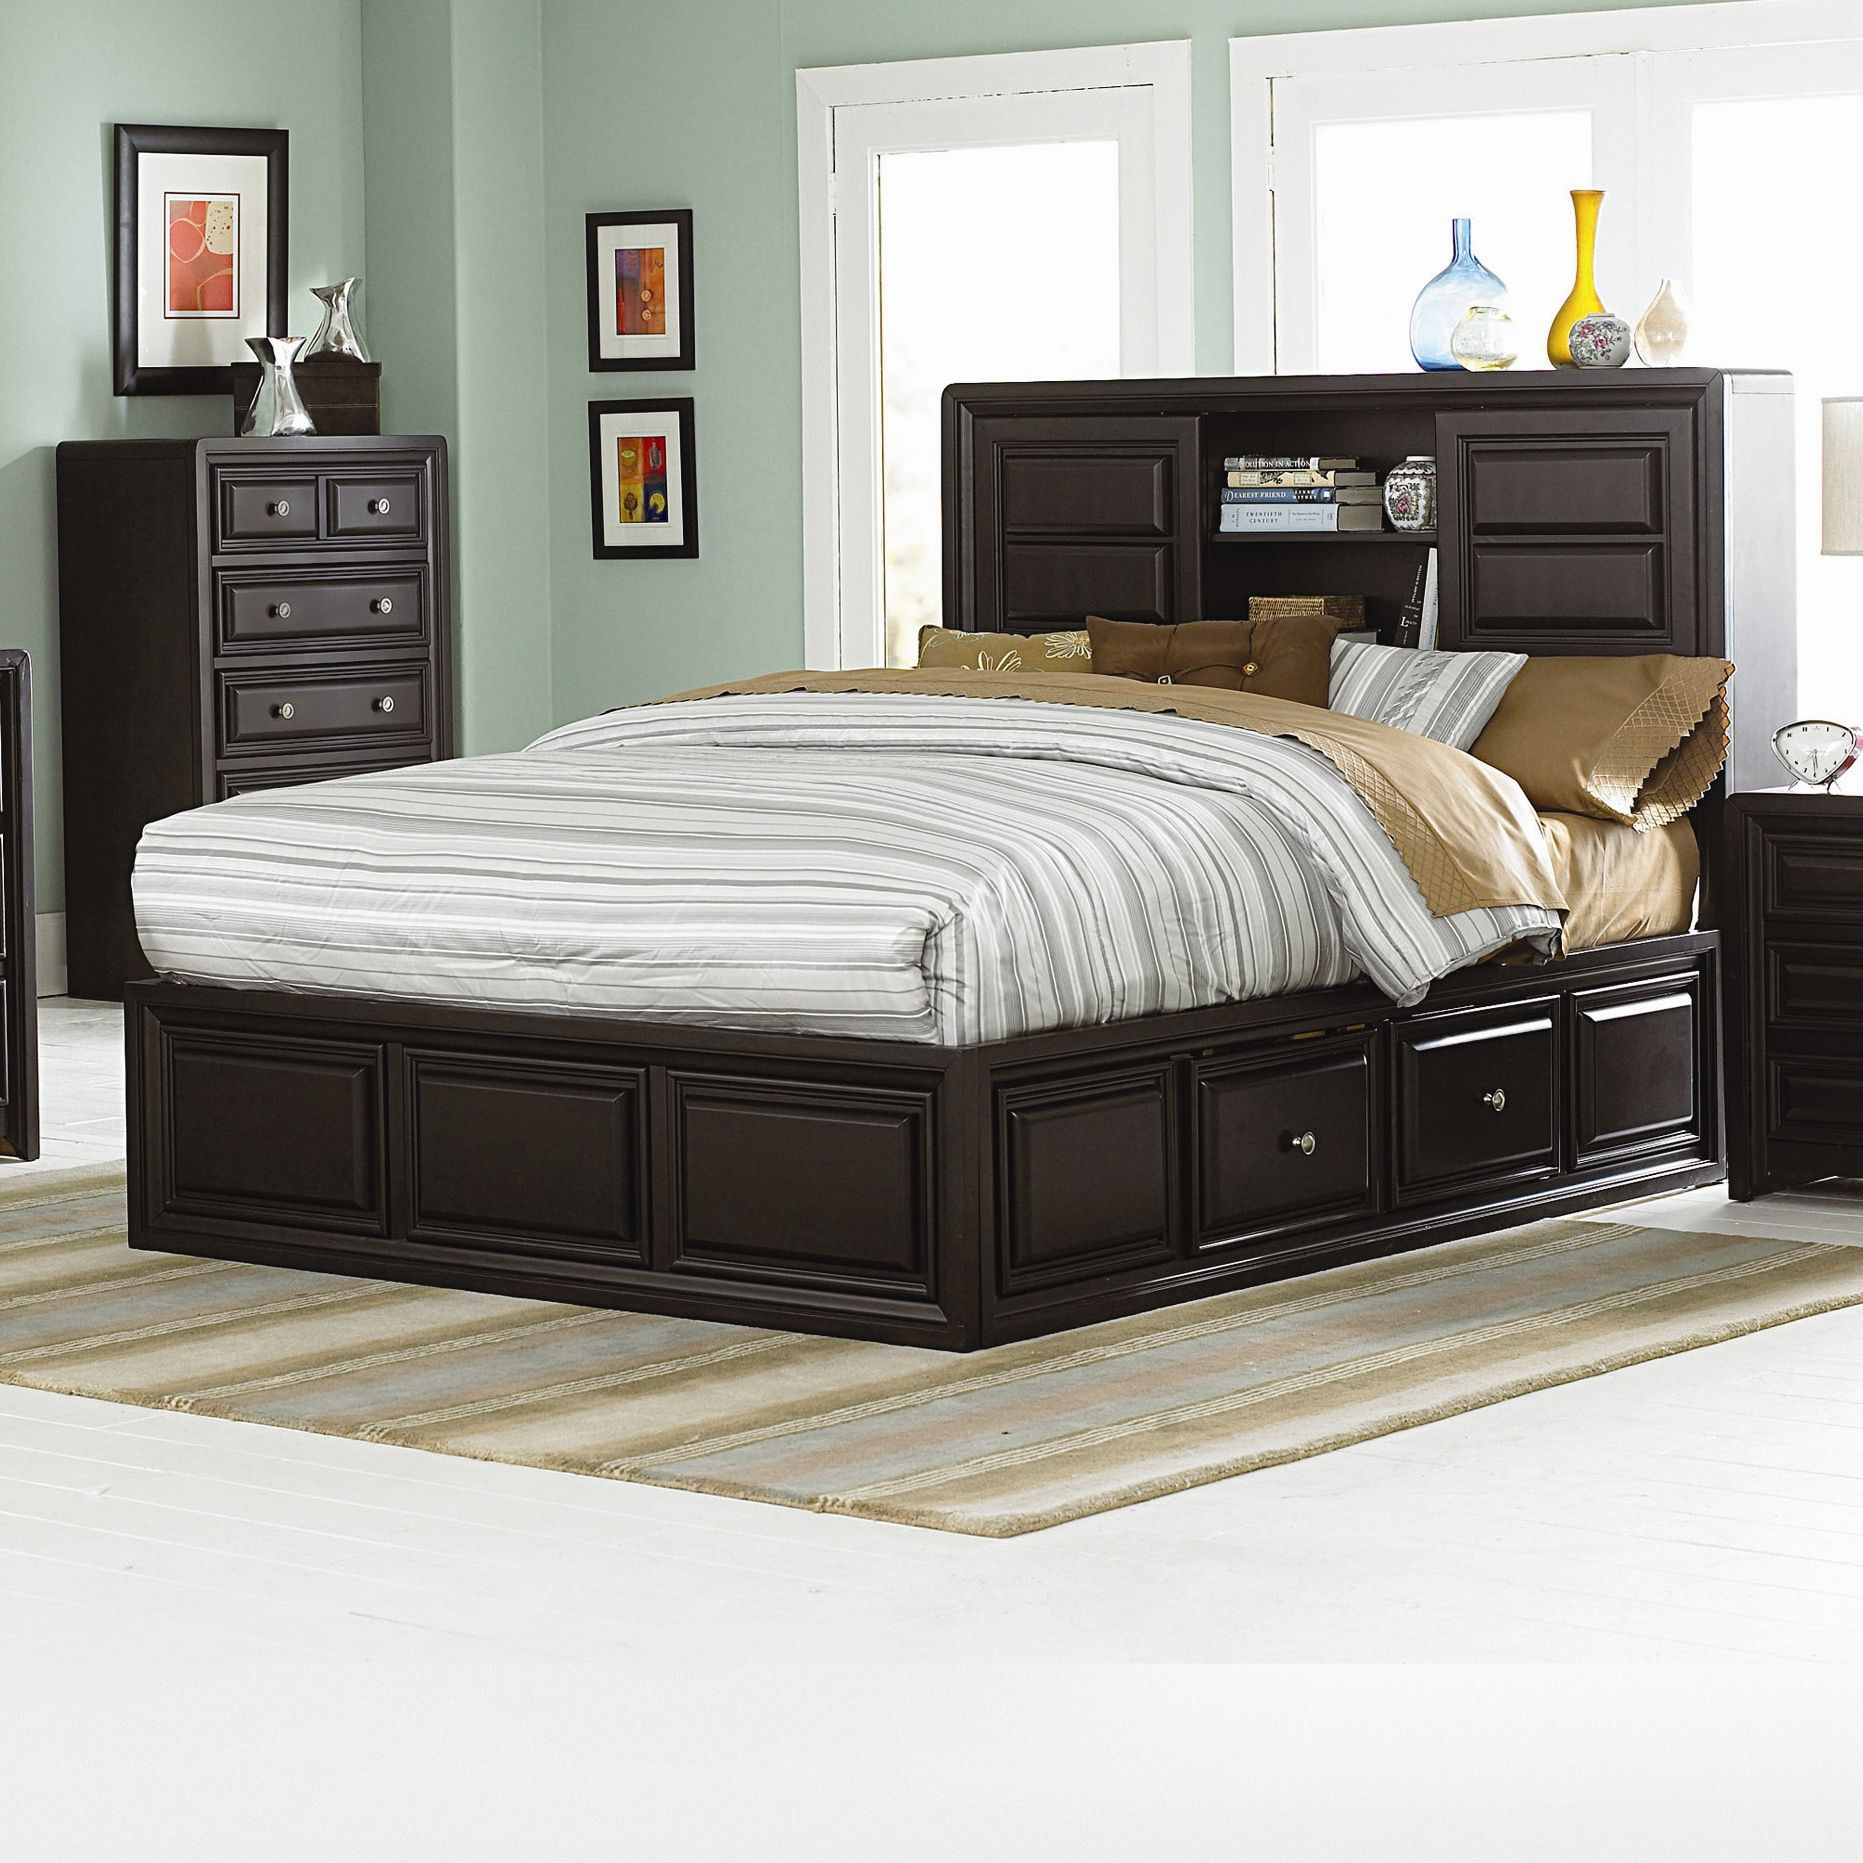 Woodbridge Home Designs Abel Panel Bed Bedroom Sets Master